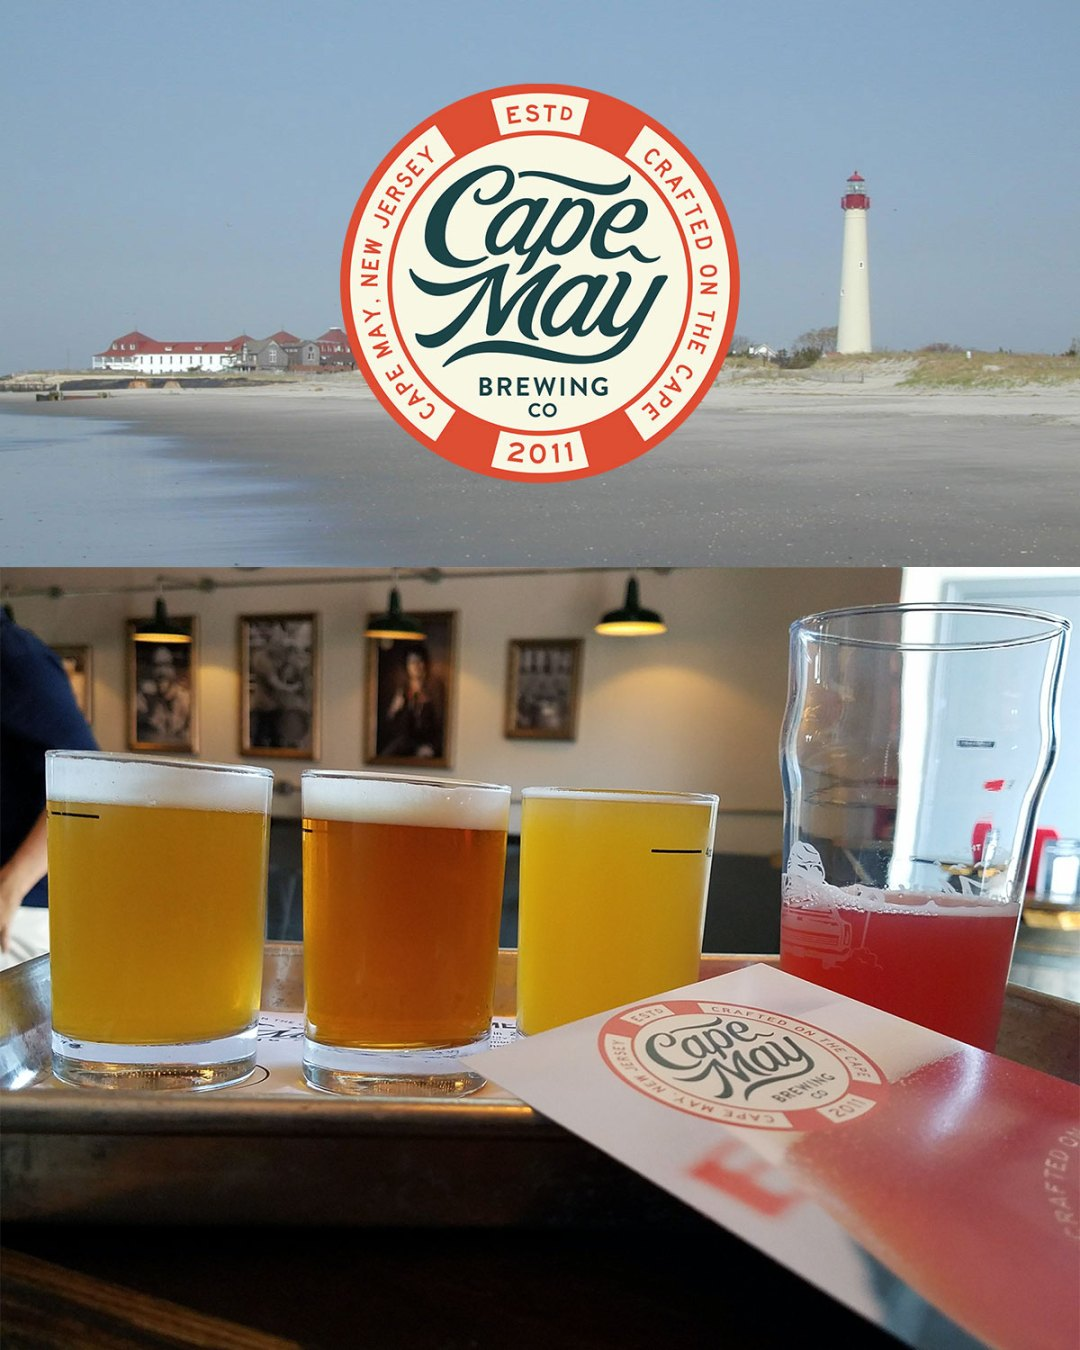 Cape May Brewery founder Ryan Krill is no slouch when it comes to the world of craft beer. Sit back and relax as he answers a few important questions for us. Click through for the interview.